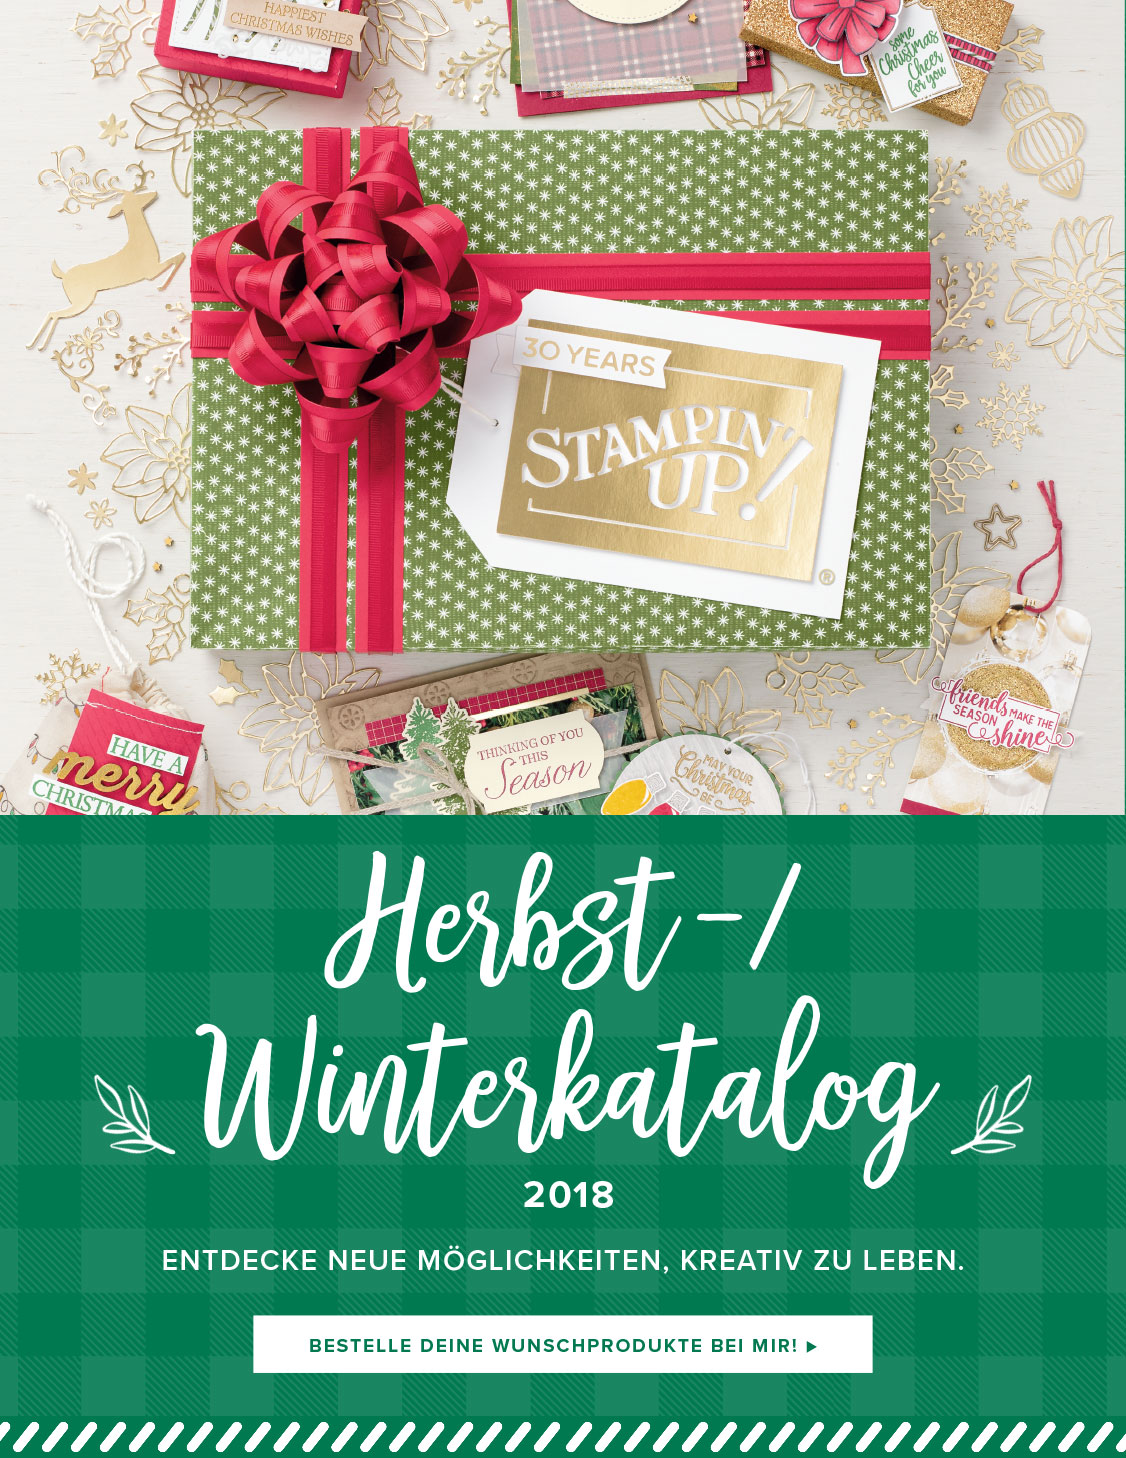 https://su-media.s3.amazonaws.com/media/catalogs/2018%20Holiday%20Catalog/Shareable%20Images/08.01.18_SHAREABLE1_HOLIDAY_CATALOG_DE.jpg